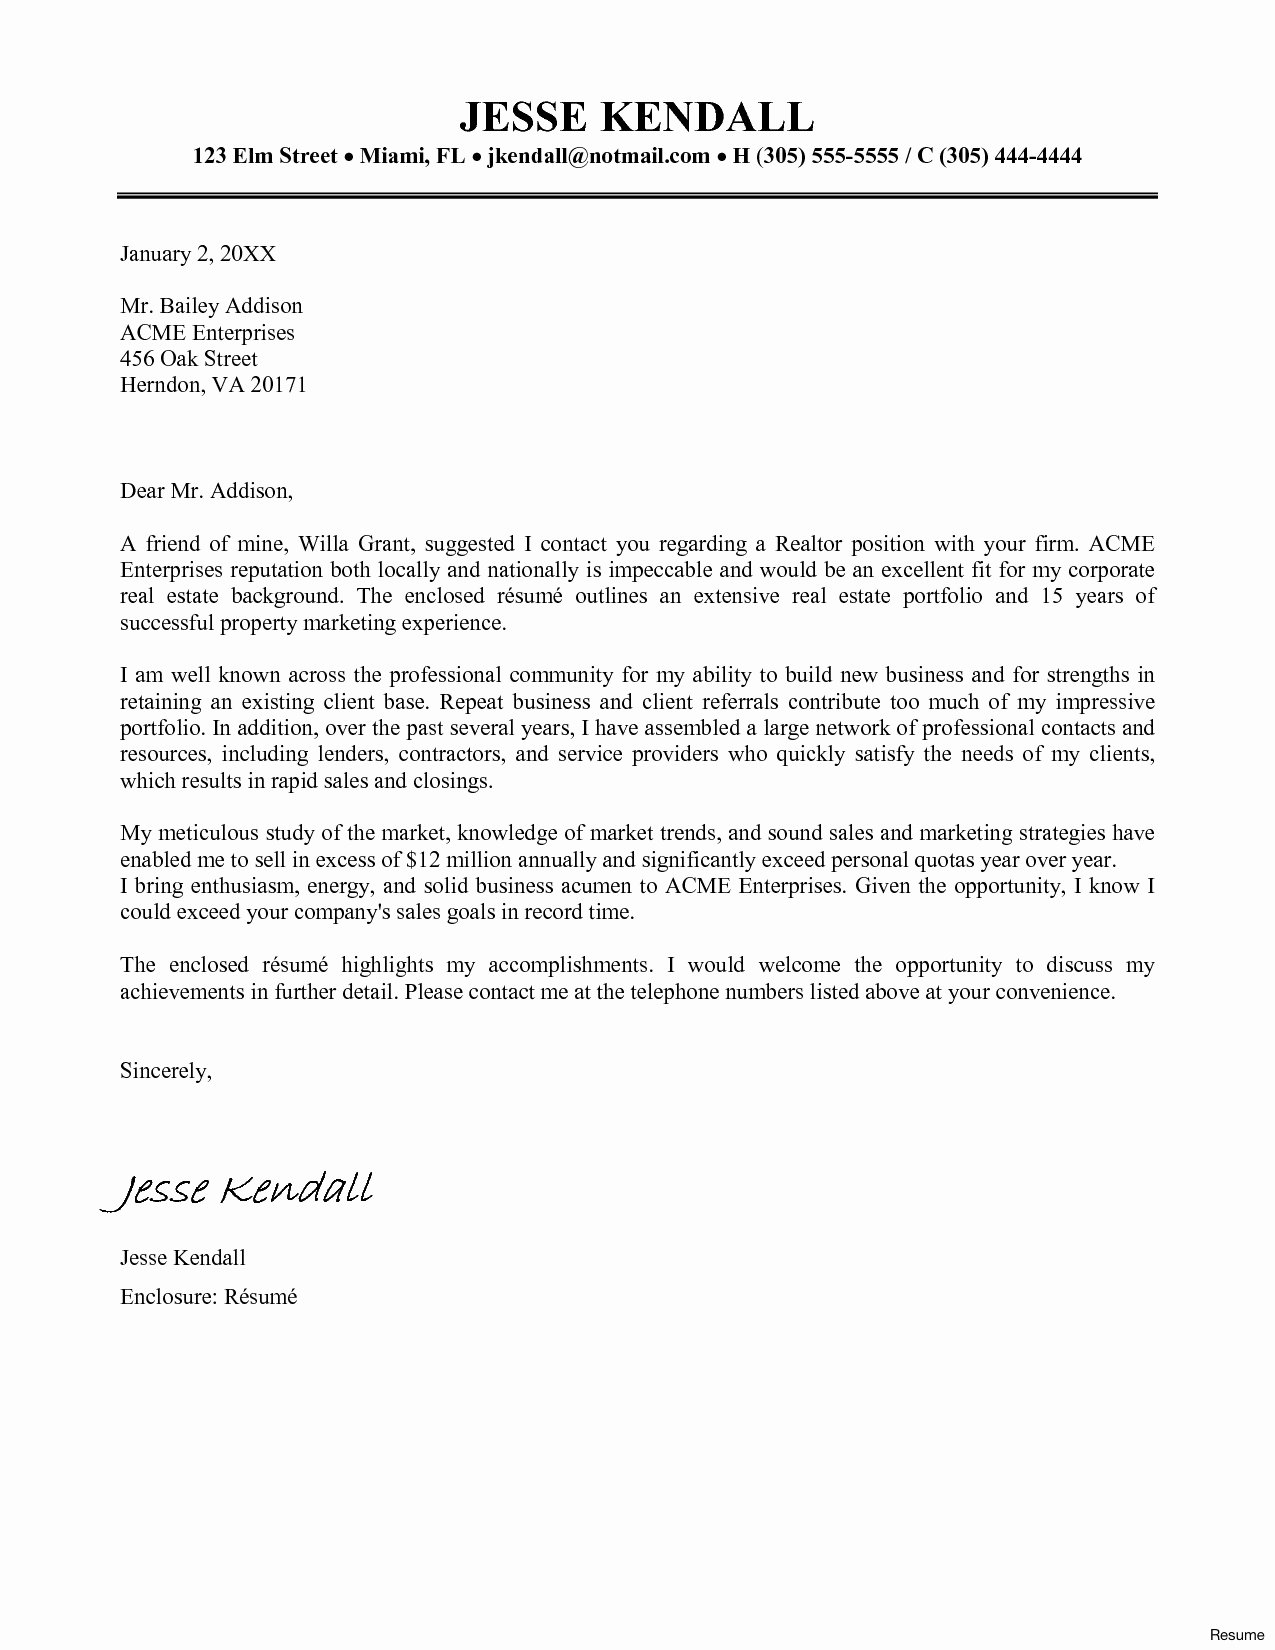 Sample Sap Appeal Letter Beautiful 15 Introduction Letter